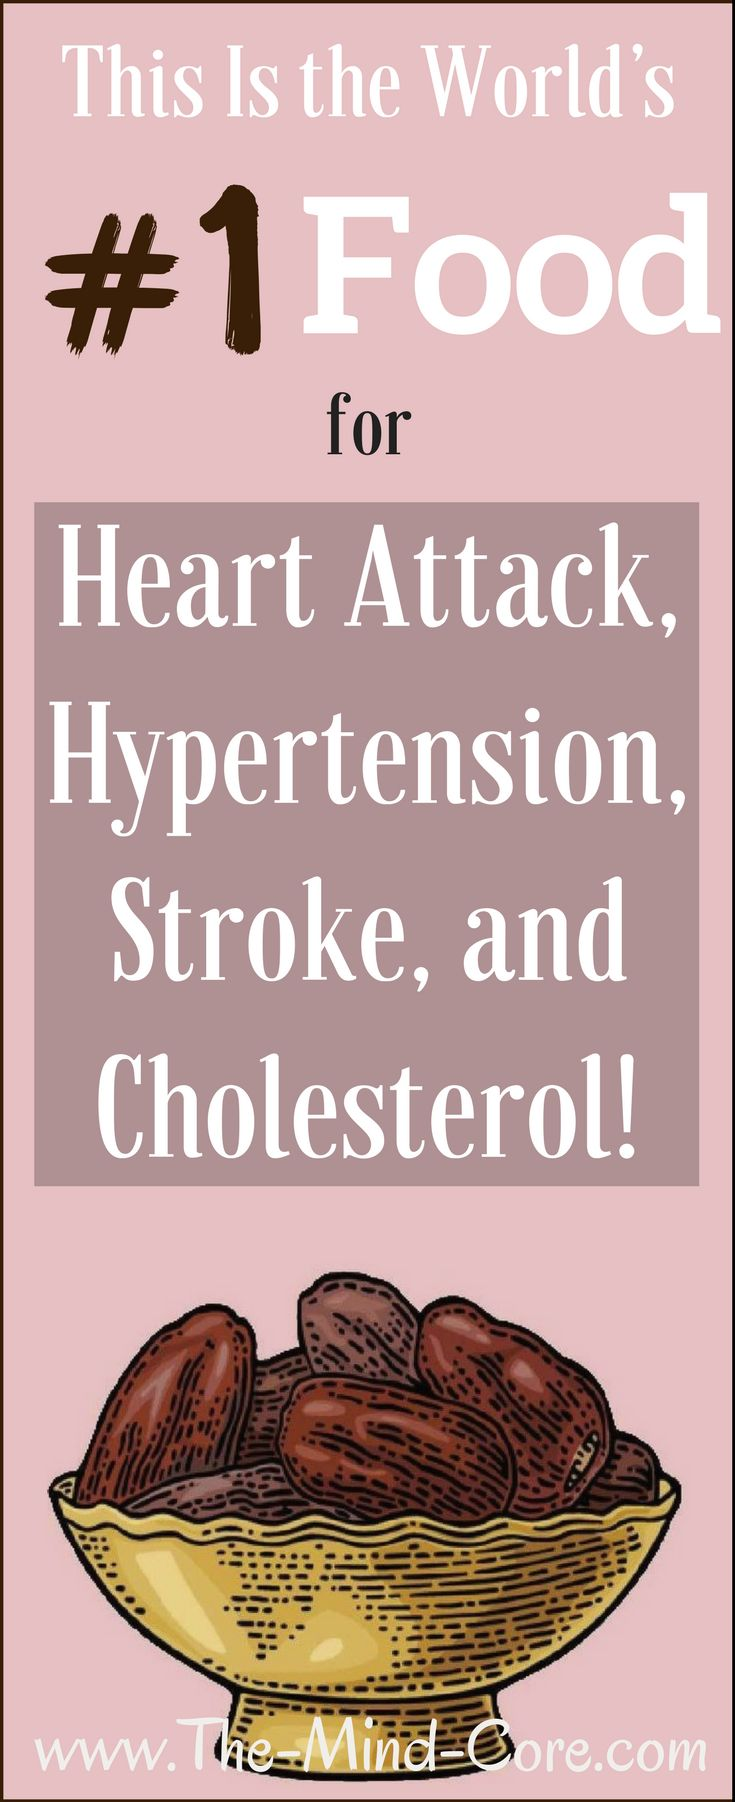 ATTENTION: This is the BEST Food for Heart Attack, Hypertension, Stroke, and Cholesterol!